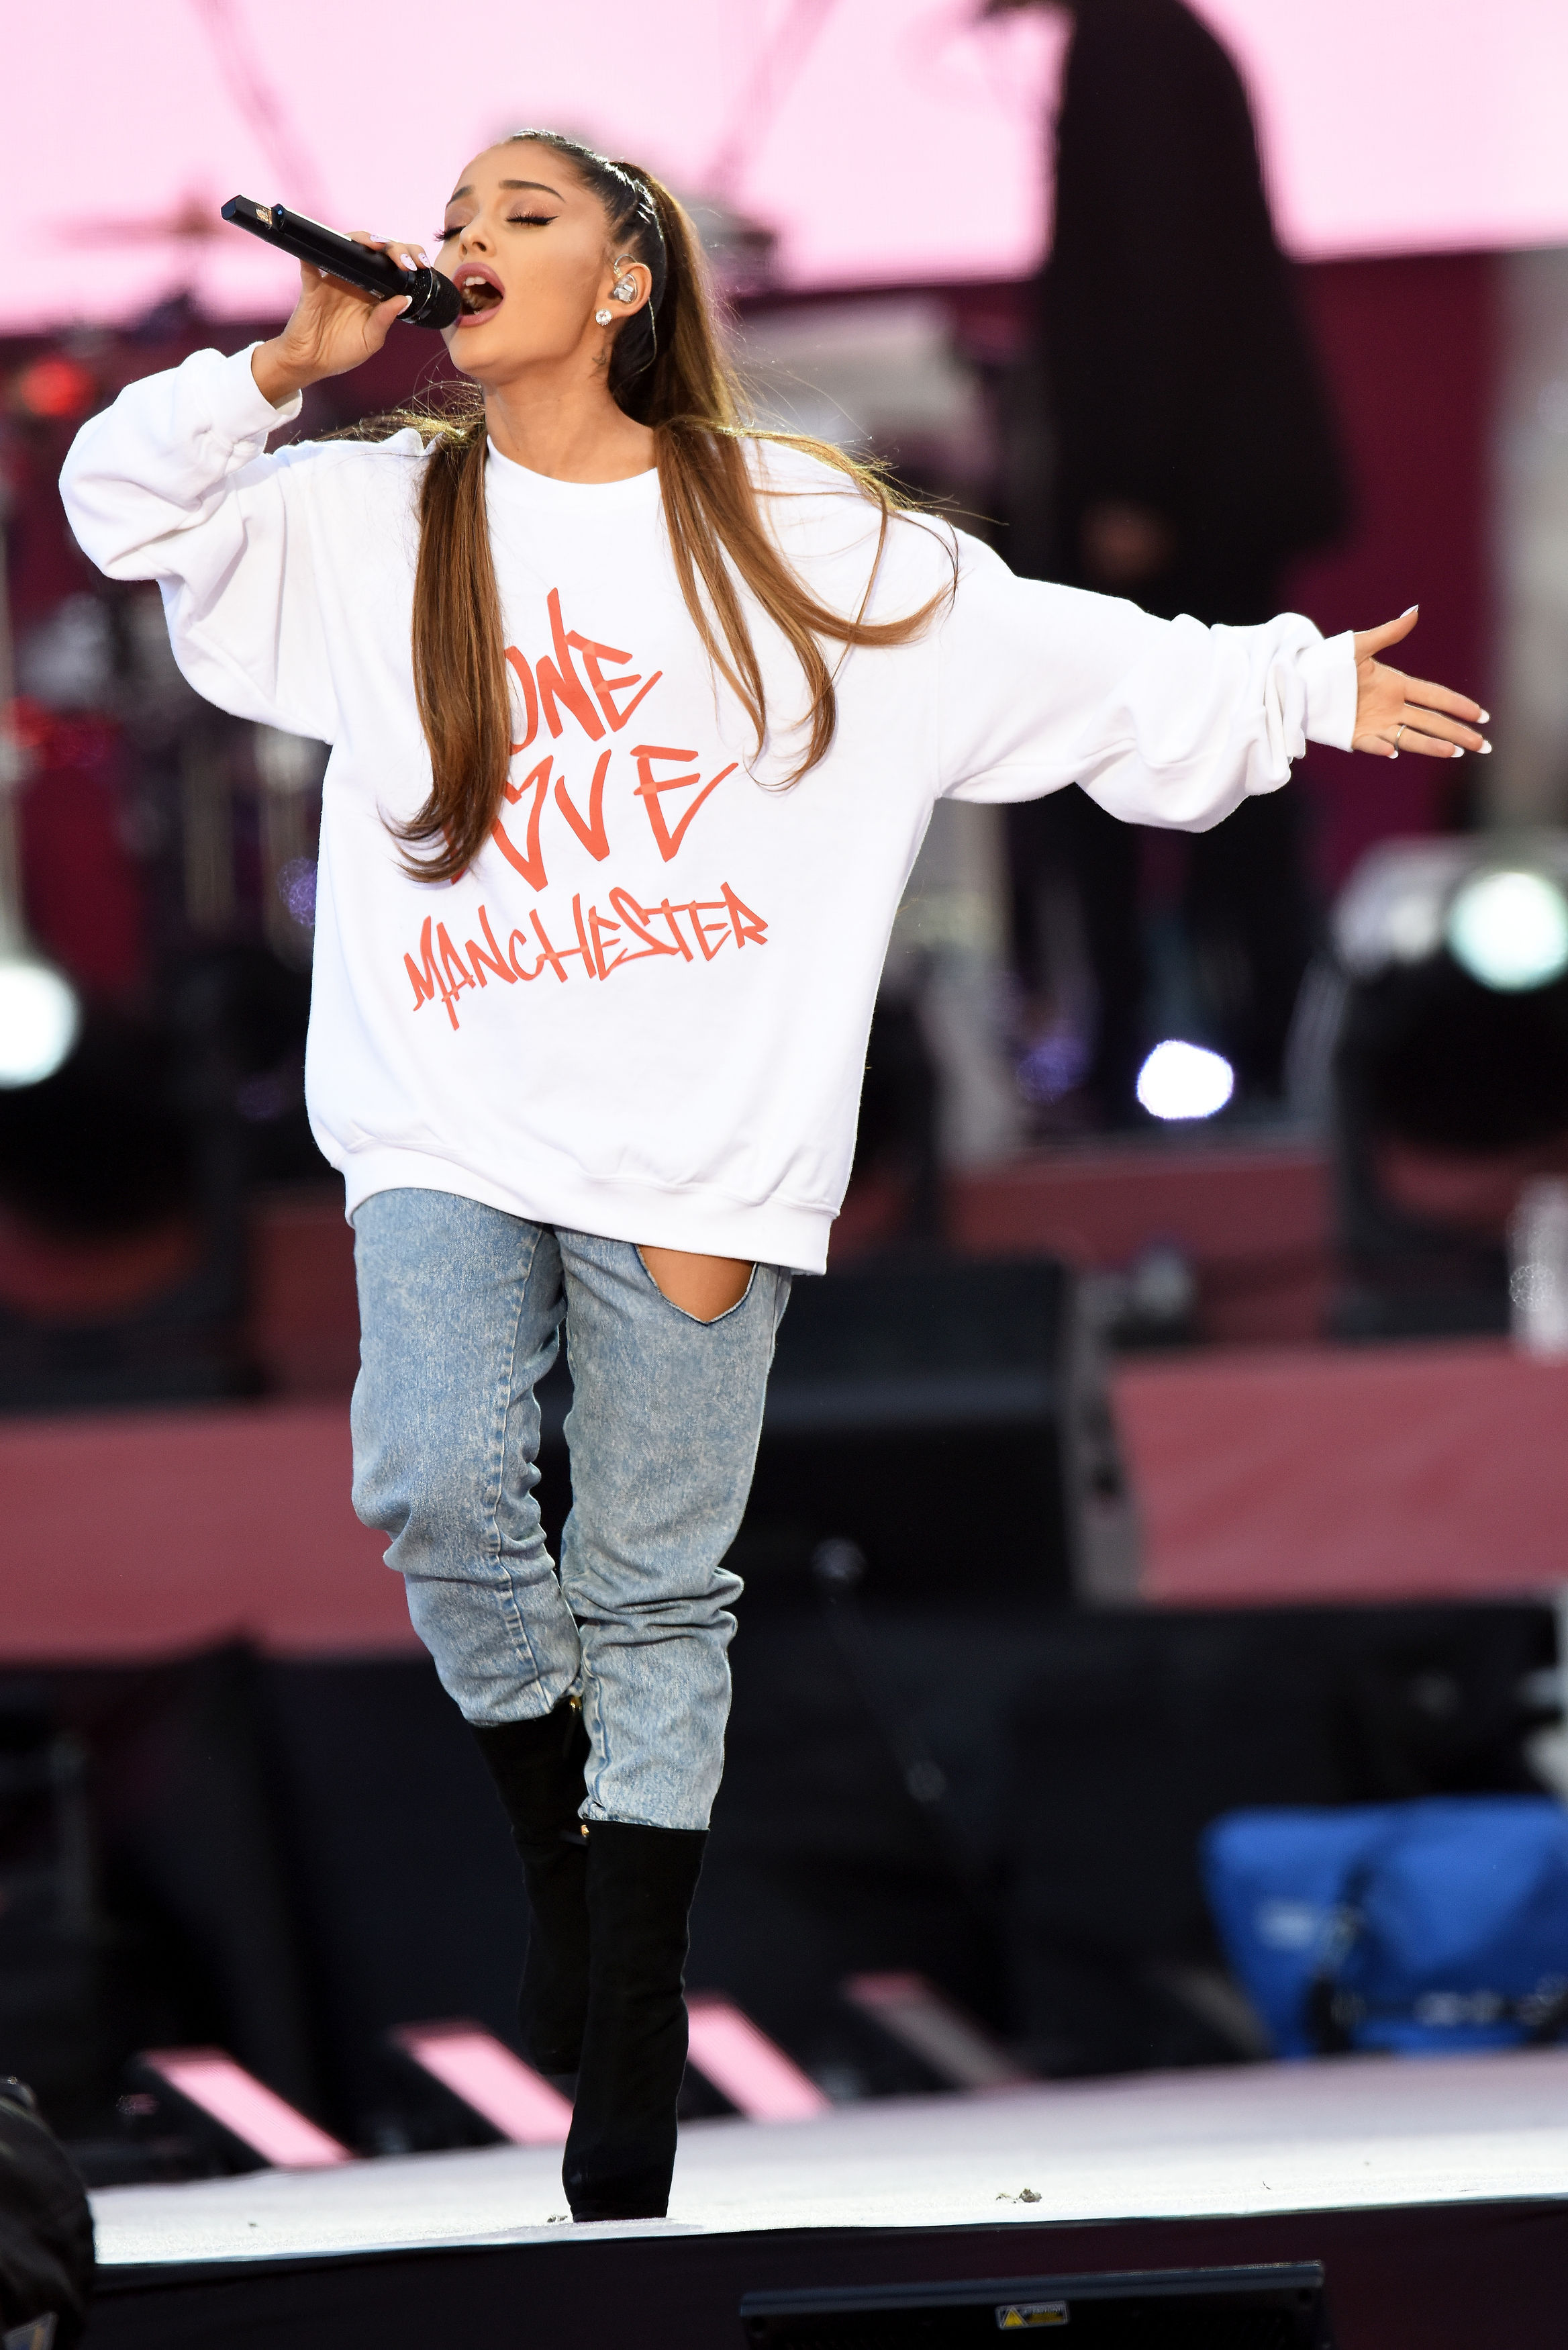 Ariana Grande performing during the One Love Manchester benefit concert for the victims of the Manchester Arena terror attack at Emirates Old Trafford, Greater Manchester